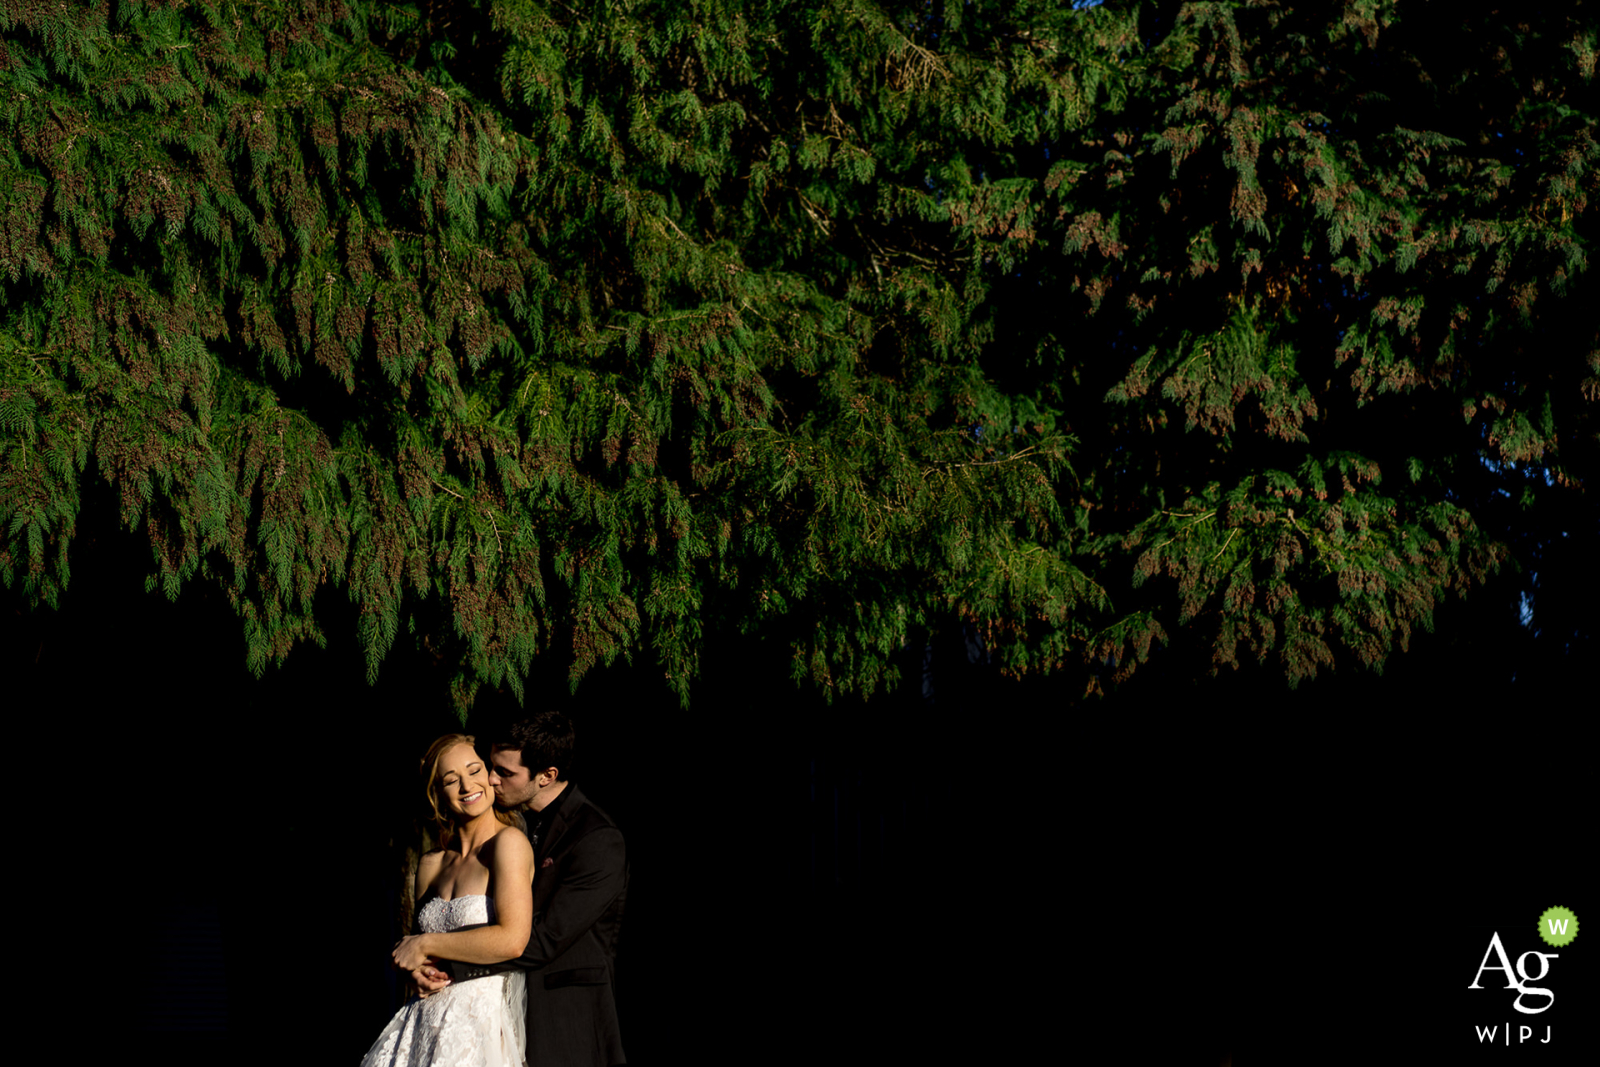 WA wedding portrait at Battleground Churchshowing the Bride and groom embrace with each other